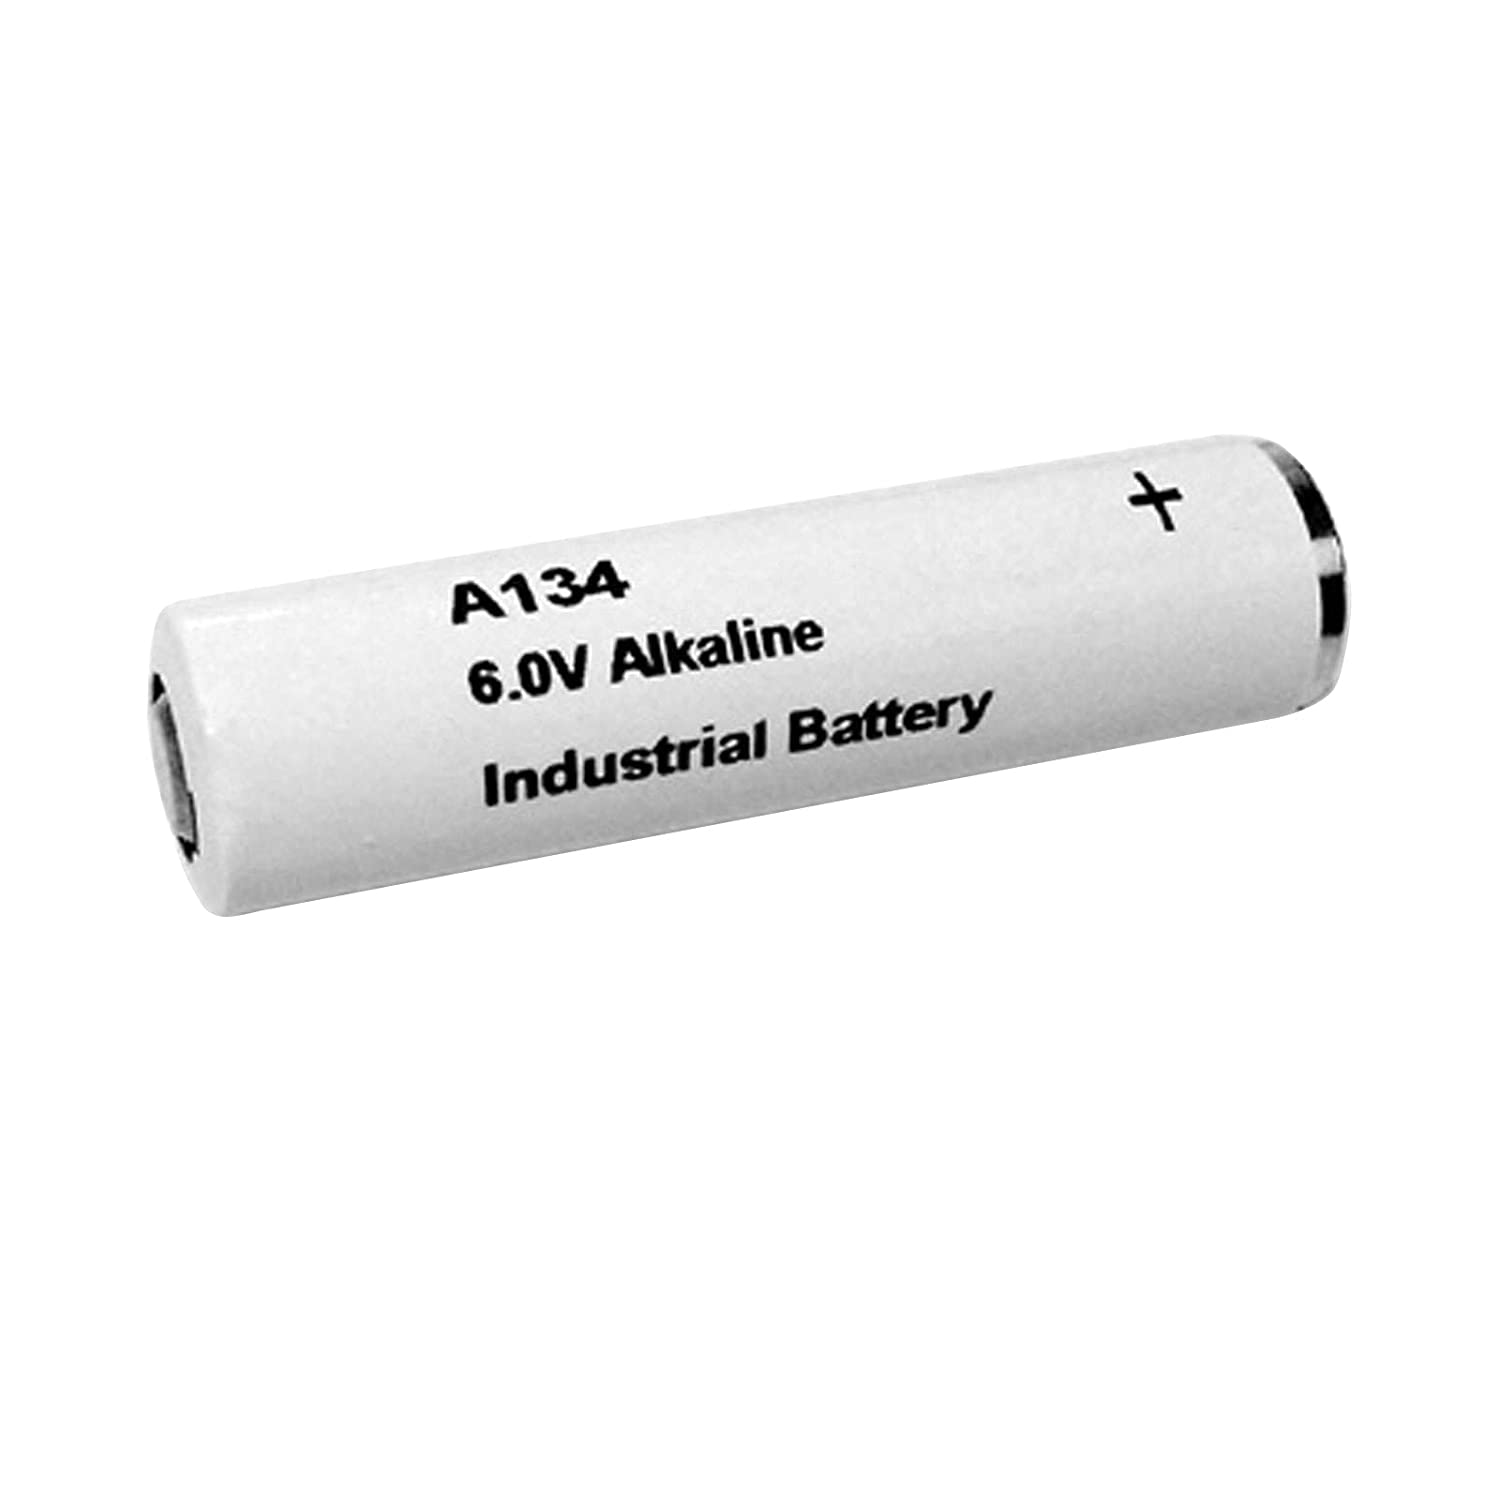 The A134 is a battery replacement for the EN134A battery